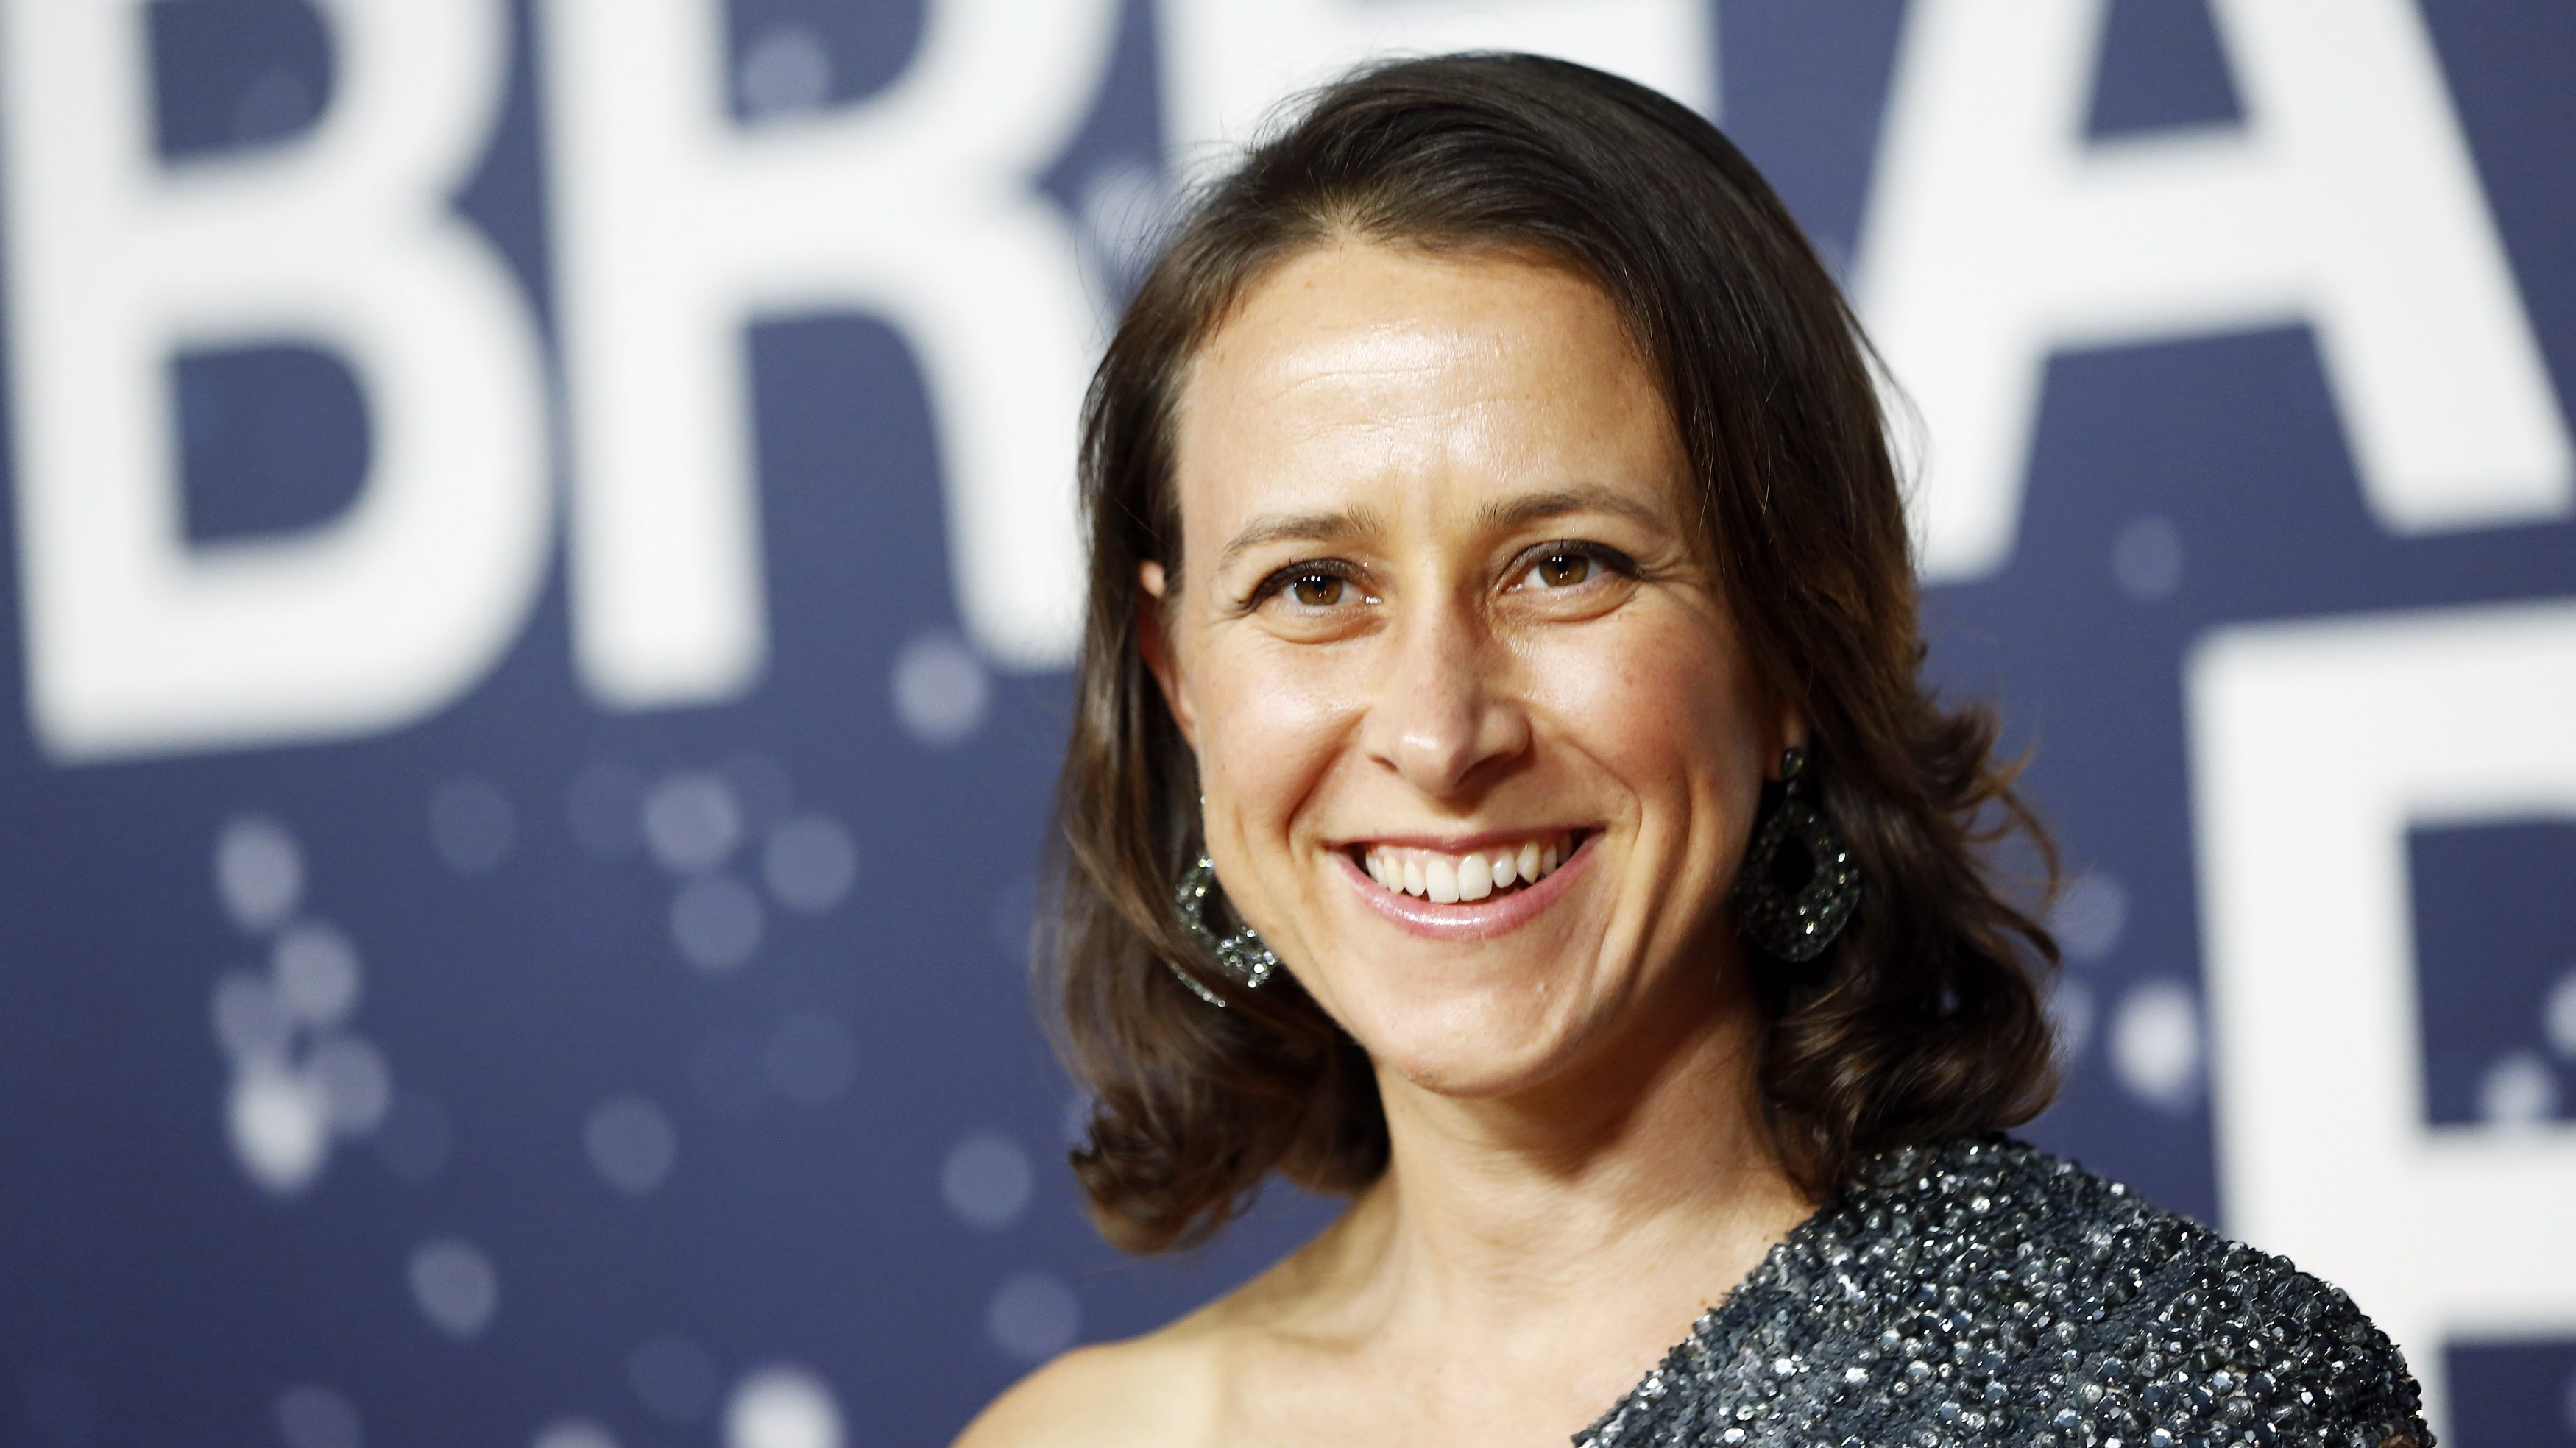 Breakthrough Prize Co-Founder Anne Wojcicki arrives on the red carpet during the second annual Breakthrough Prize Awards at the NASA Ames Research Center in Mountain View, California November 9, 2014.